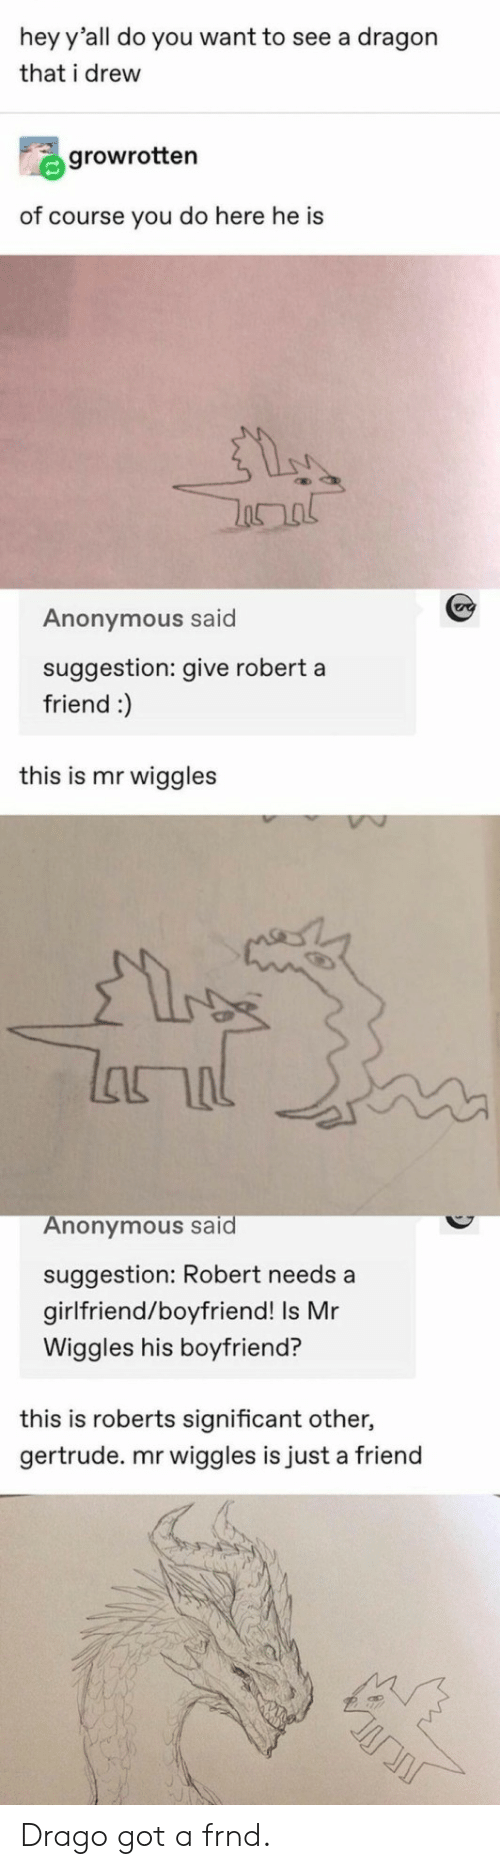 Anonymous, Girlfriend, and Boyfriend: hey y'all do you want to see a dragon  that i drew  growrotten  of course you do here he is  Anonymous said  suggestion: give robert a  friend :)  this is mr wiggles  lanal  Anonymous said  suggestion: Robert needs a  girlfriend/boyfriend! Is Mr  Wiggles his boyfriend?  this is roberts significant other,  gertrude. mr wiggles is just a friend Drago got a frnd.